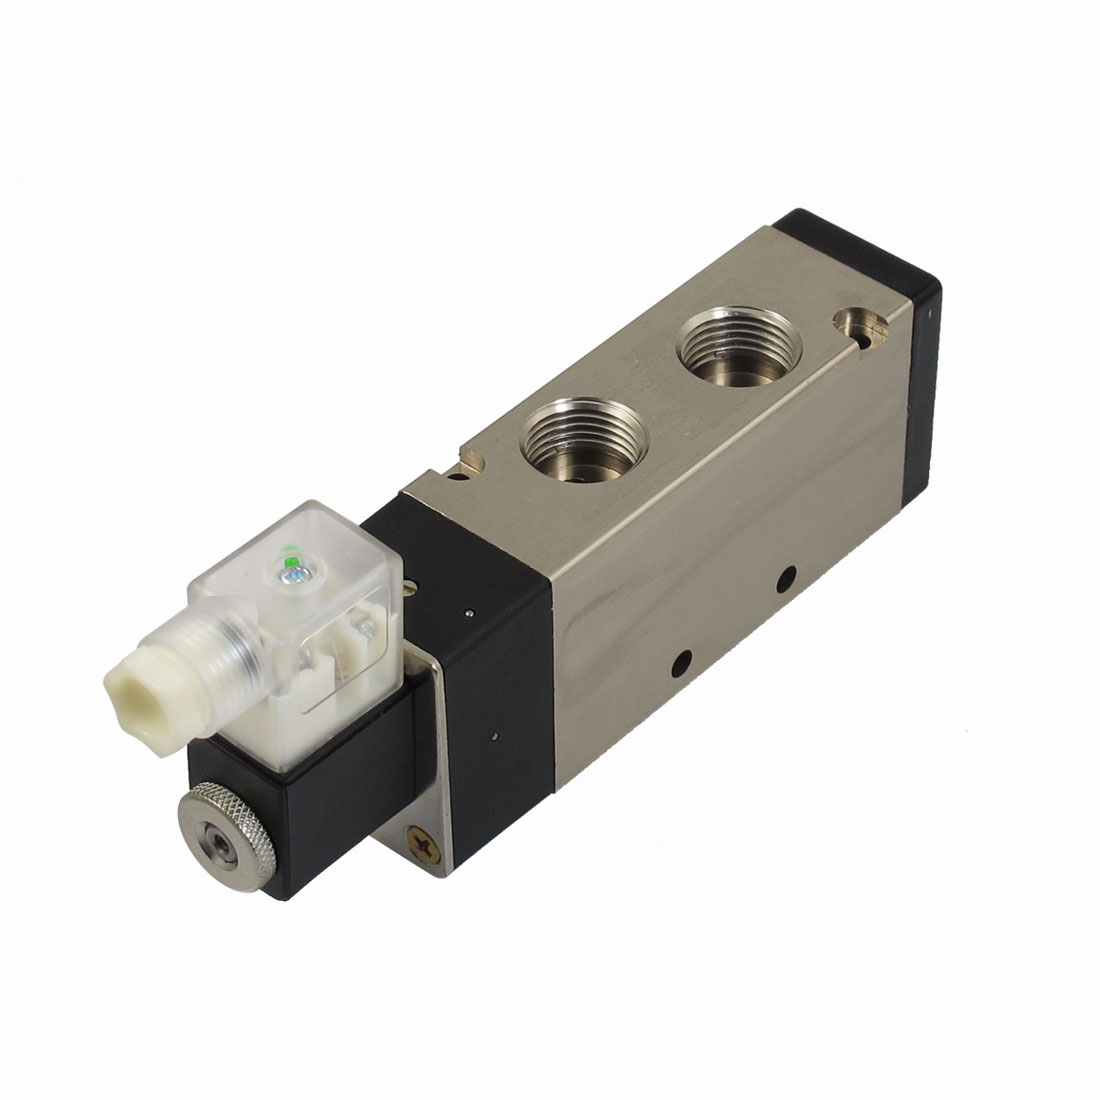 "DC 12V 3W 250mA 2 Position 5 Way G1/2"" Exhaust Single Head Electromagnetic Solenoid Valve"